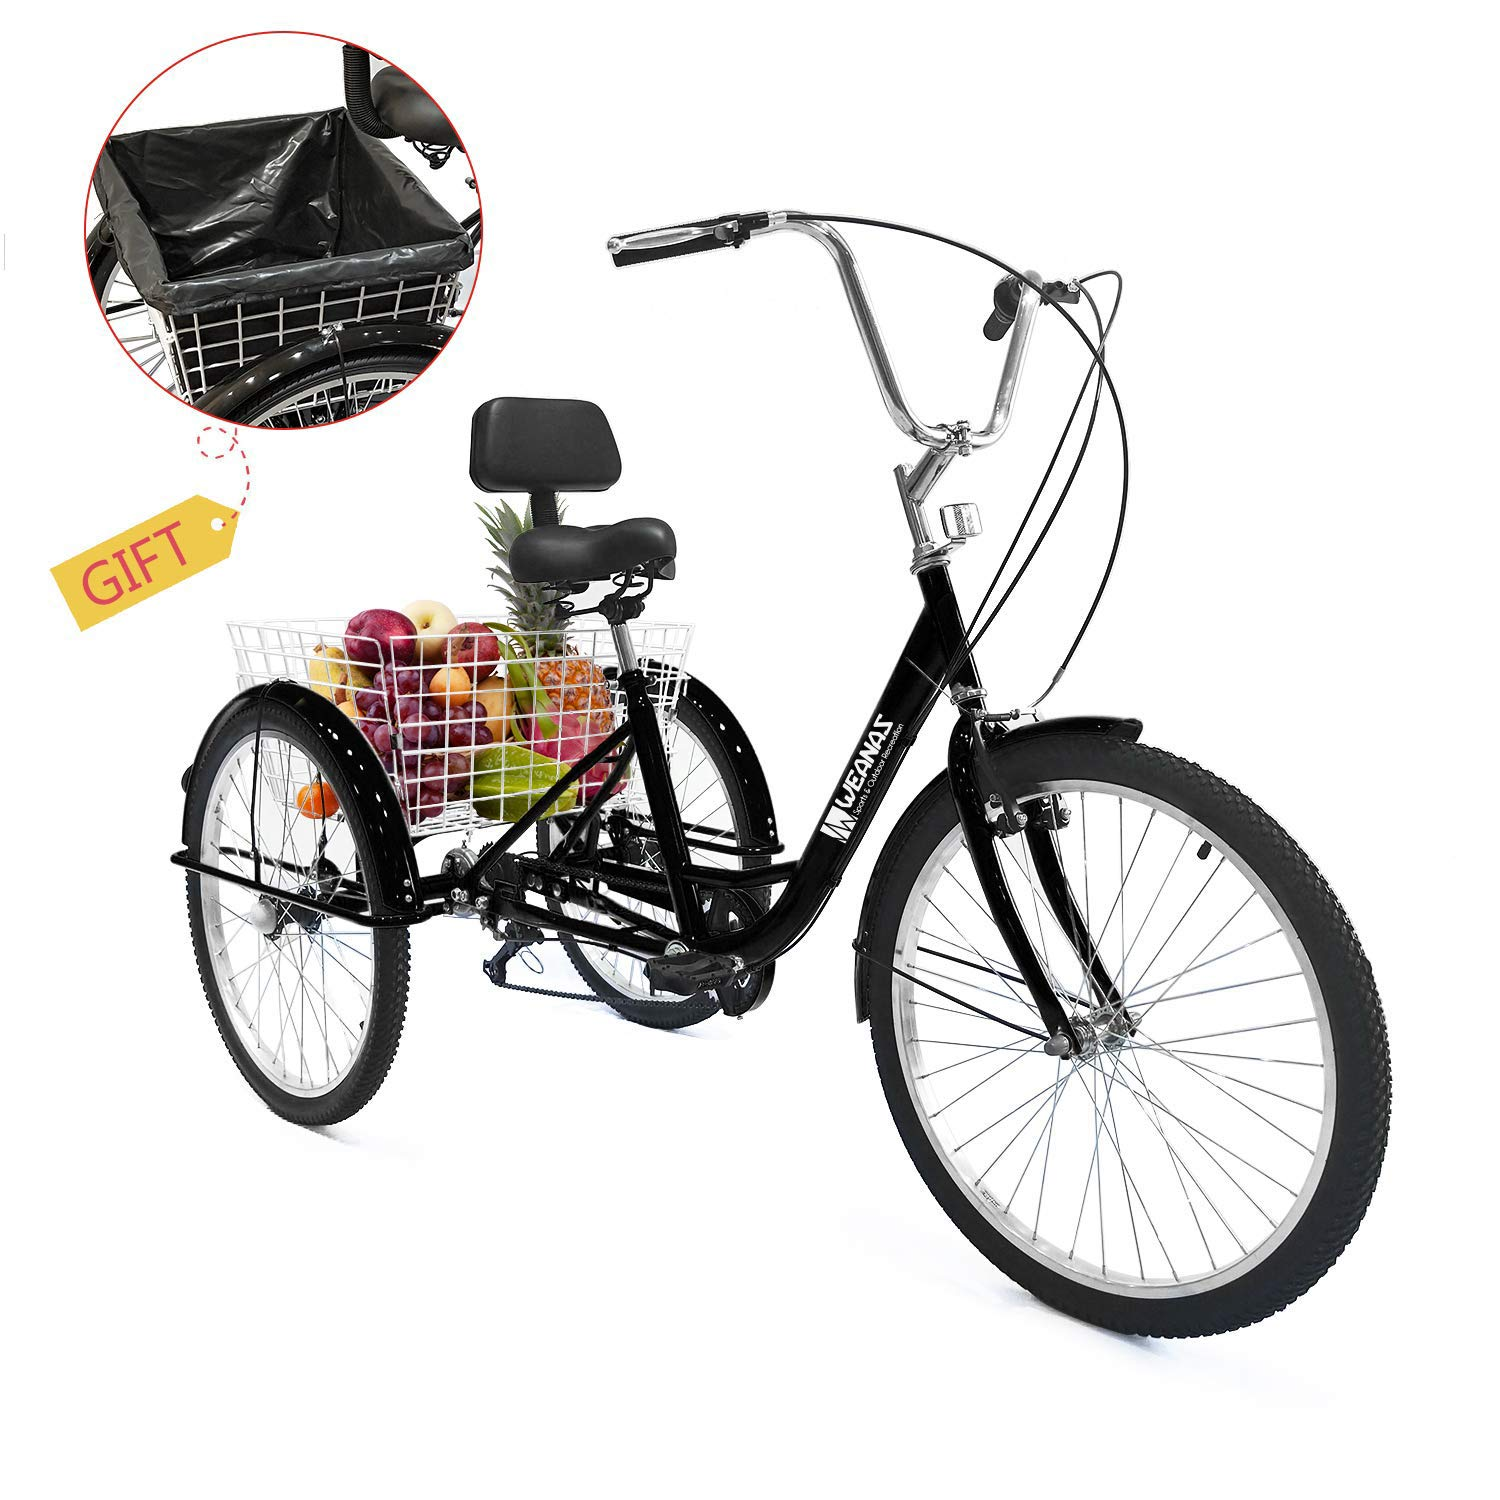 Weanas Tricycle Three Wheeled Bicycles Recreation